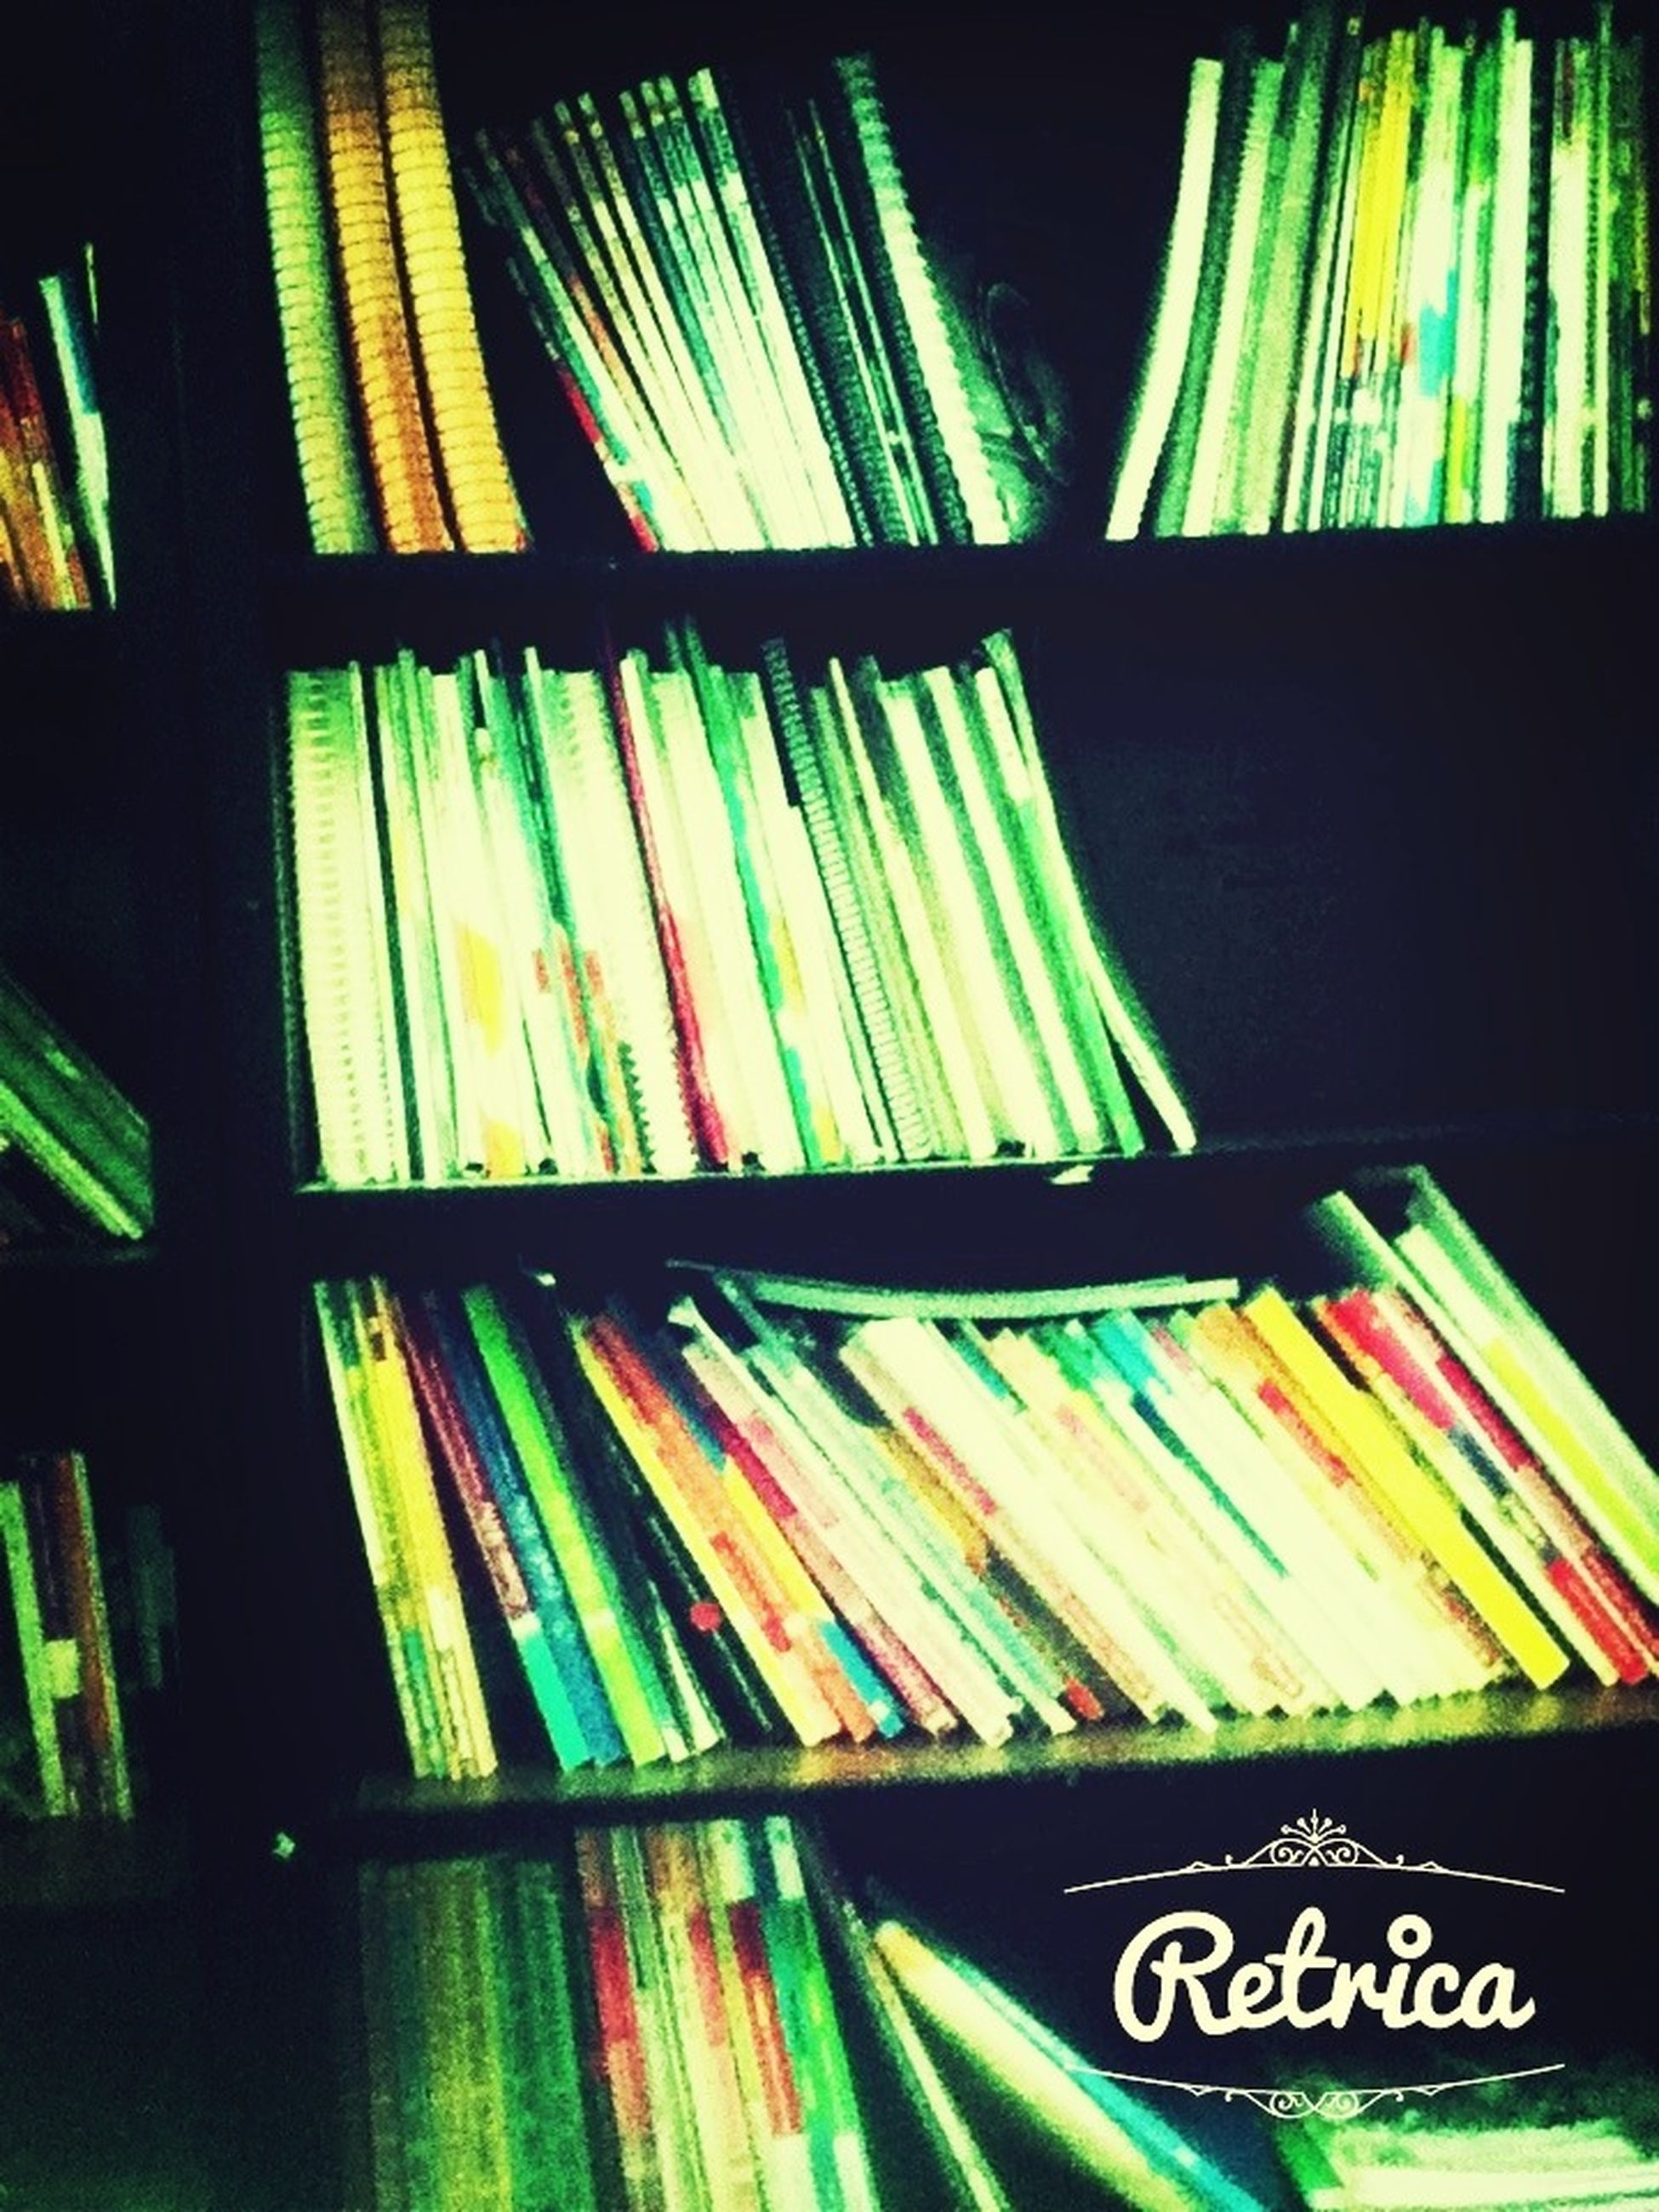 indoors, variation, multi colored, shelf, education, arrangement, book, in a row, full frame, large group of objects, choice, order, backgrounds, abundance, still life, collection, bookshelf, close-up, literature, no people